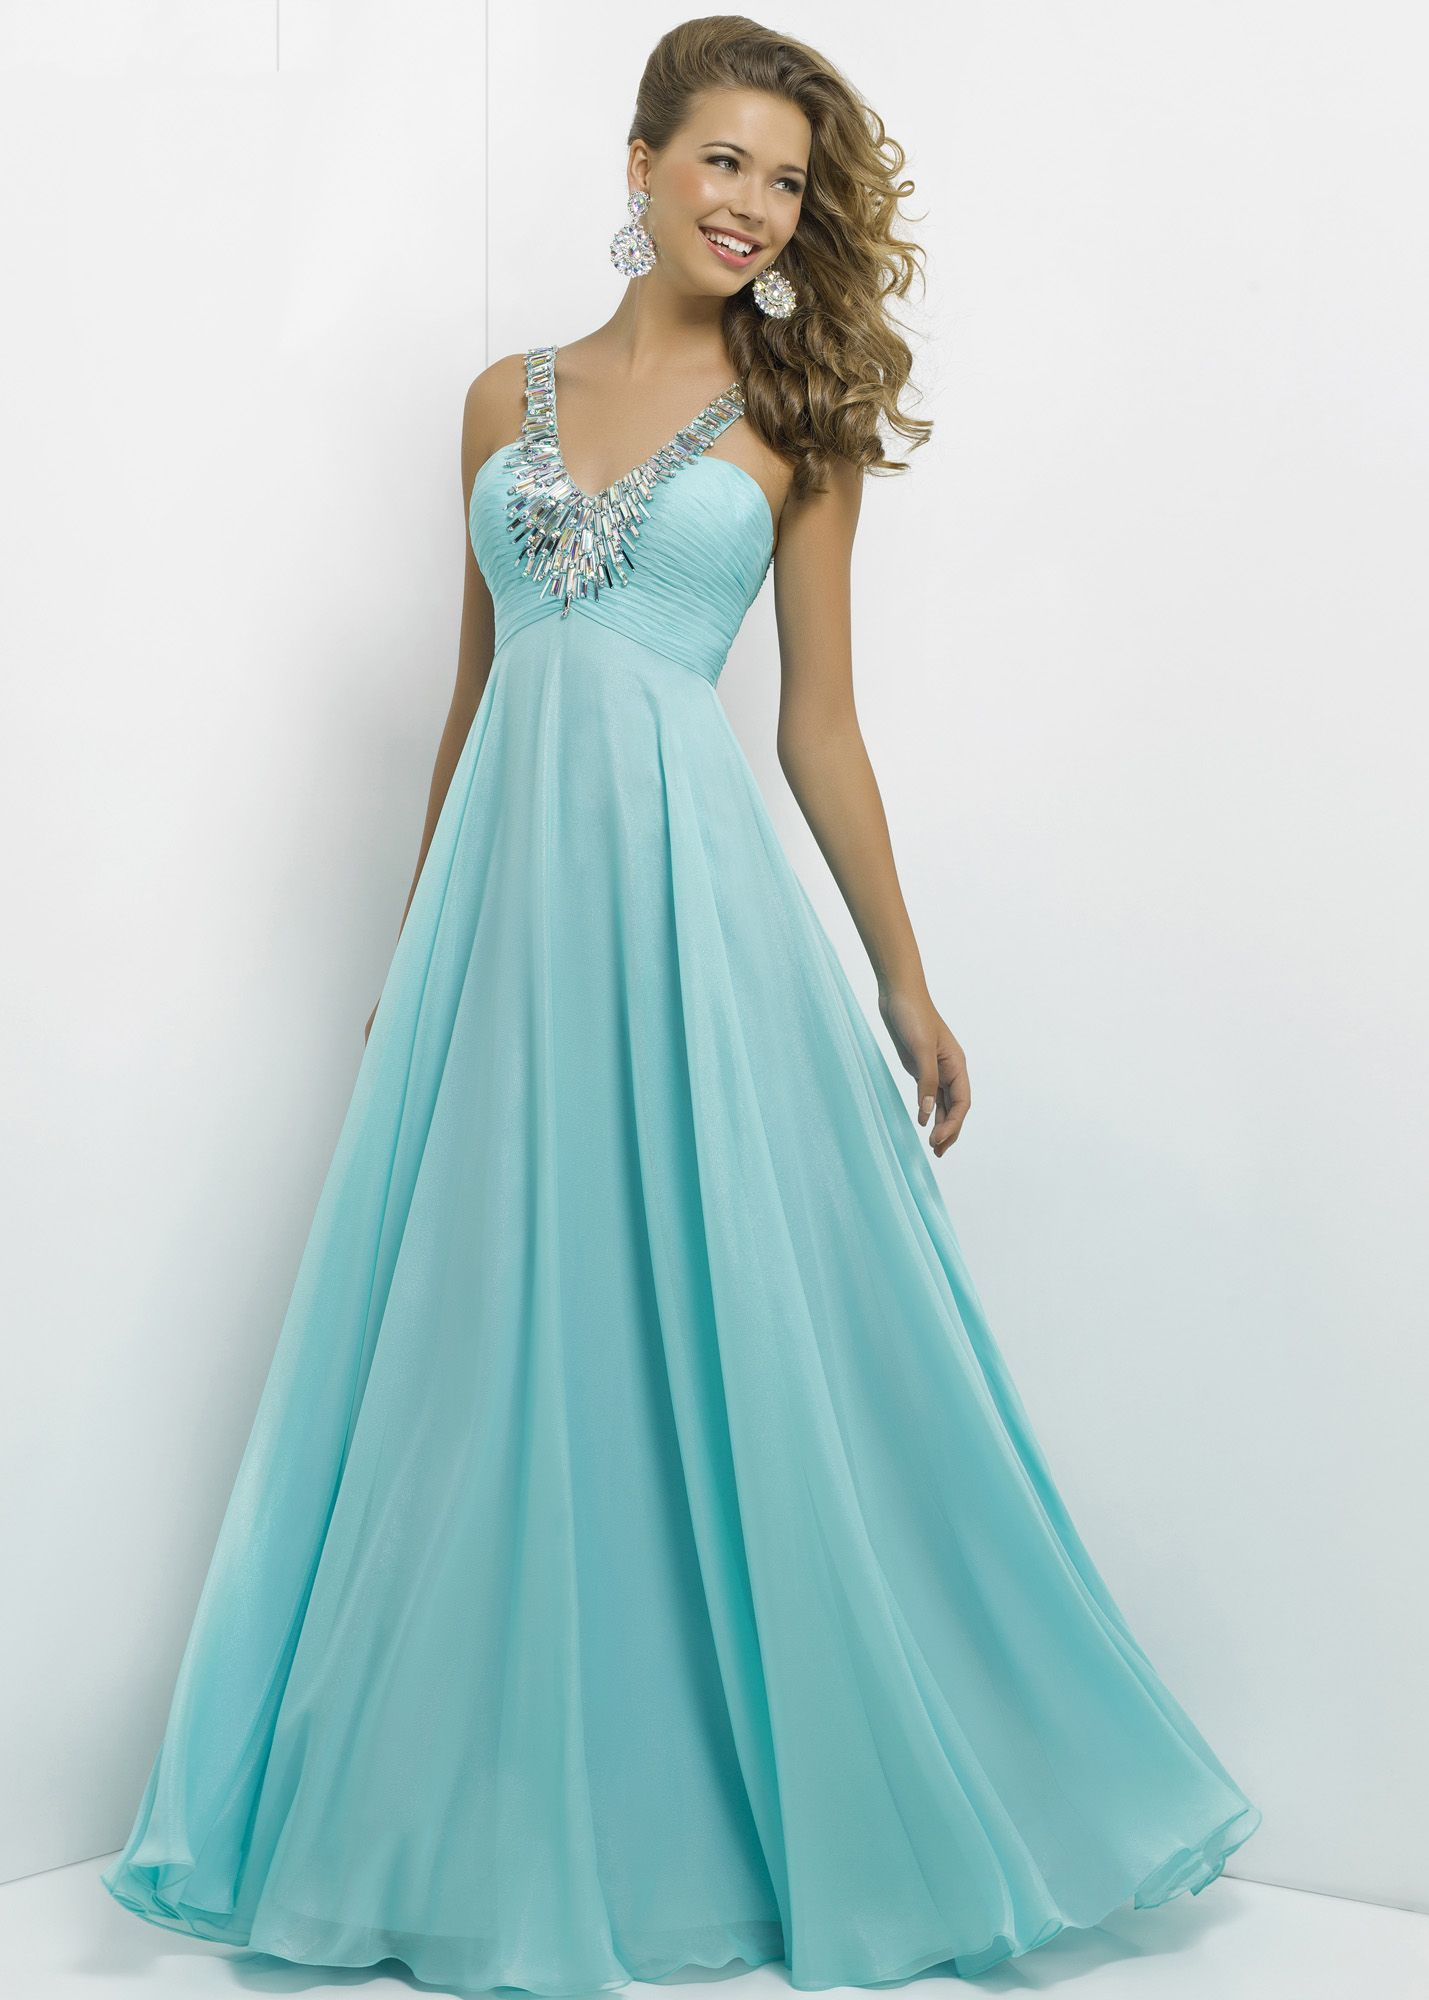 prom dresses with straps - Google zoeken | Prom dresses ...